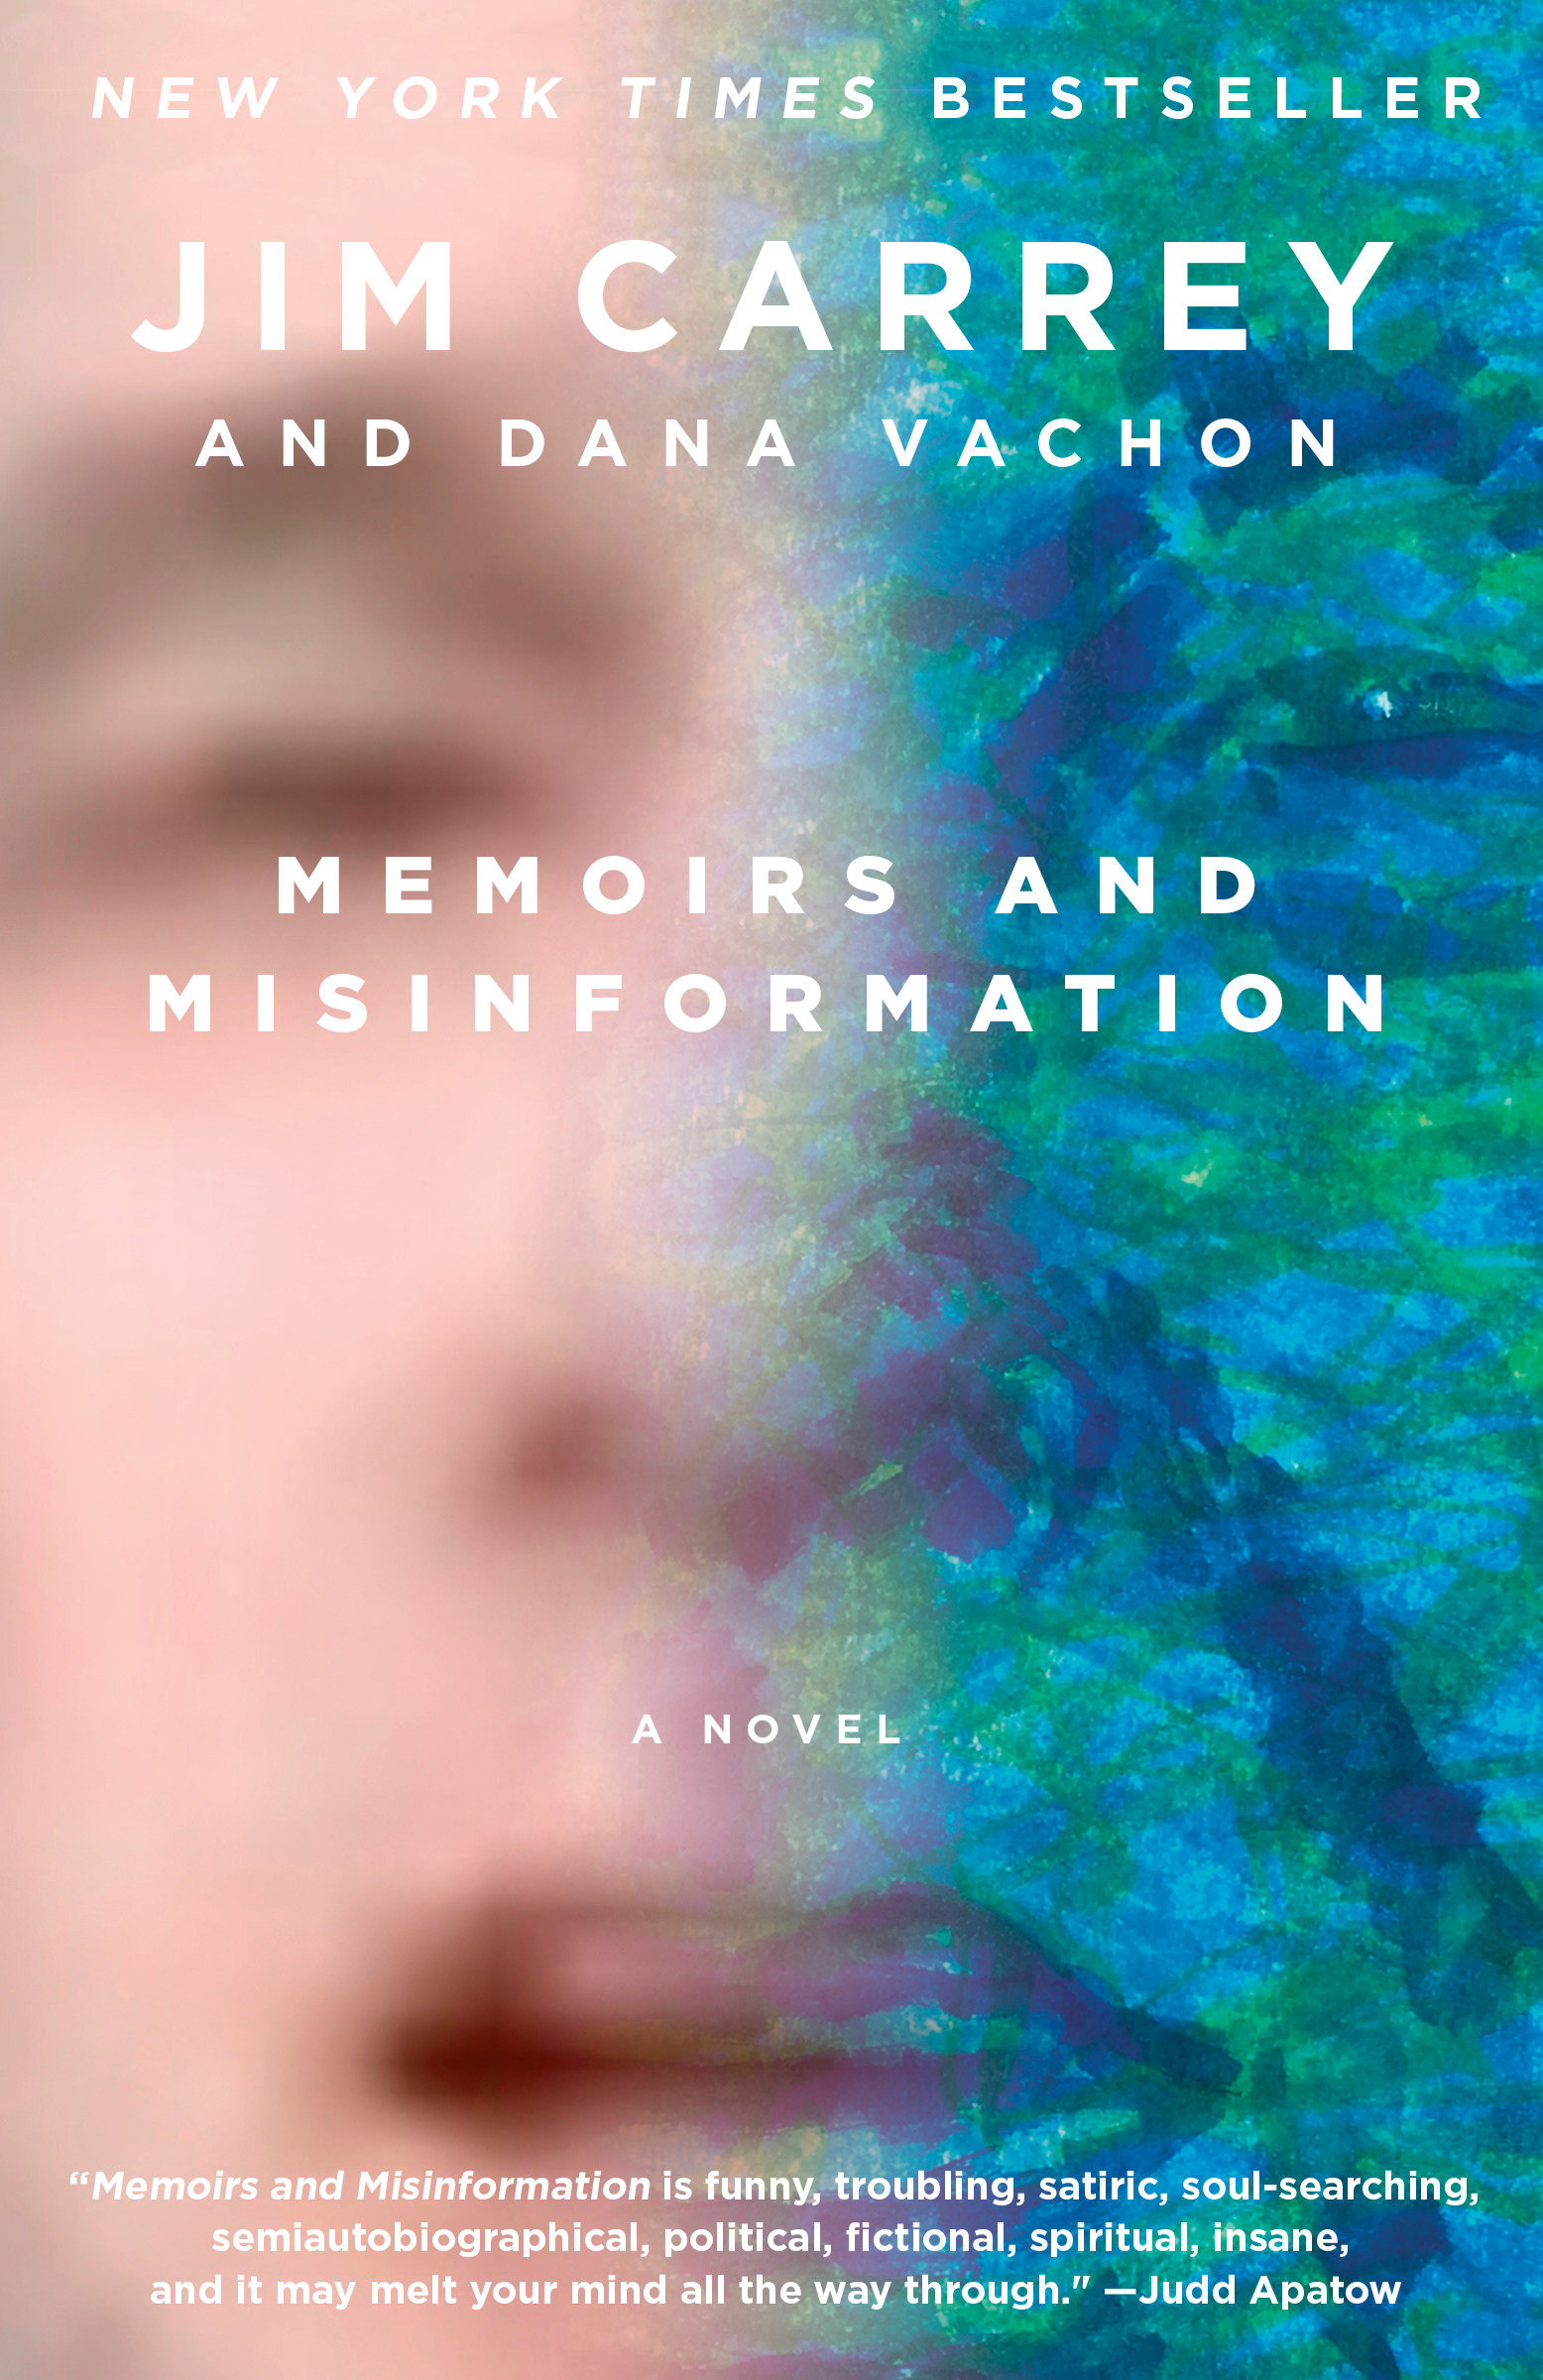 Memoirs and Misinformation A novel